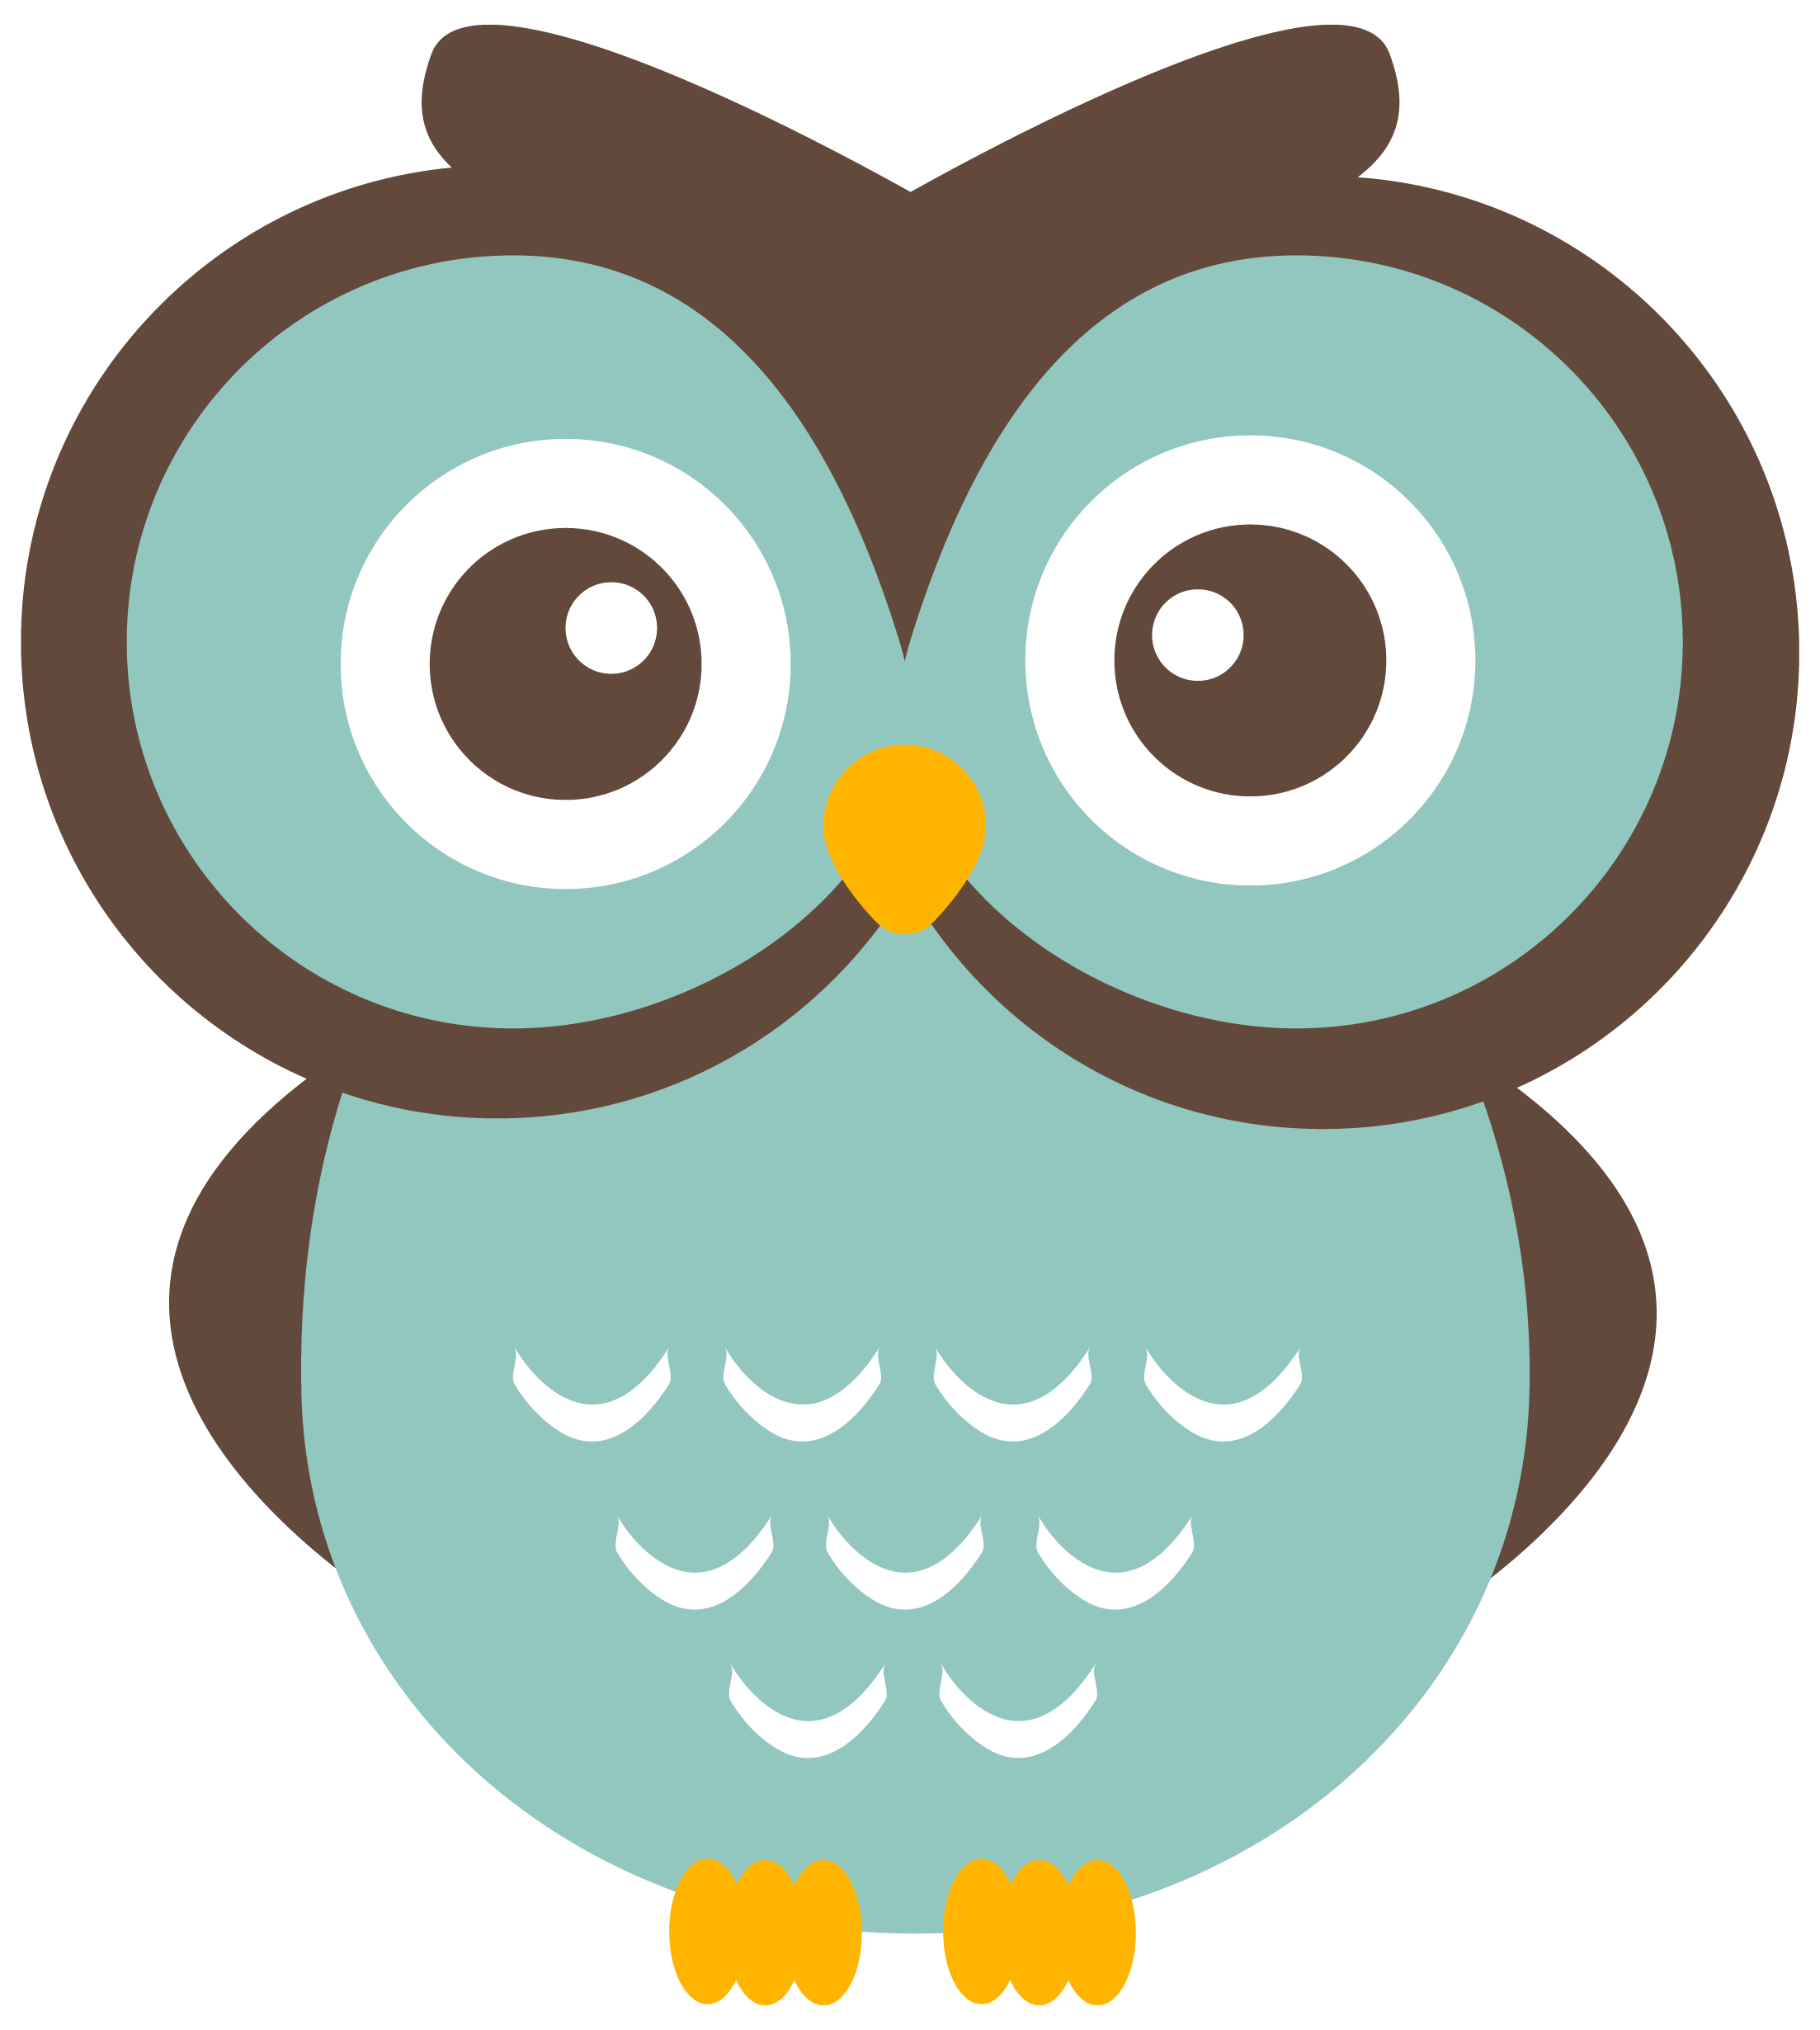 vector royalty free library Owls clipart. Teal owl free download.